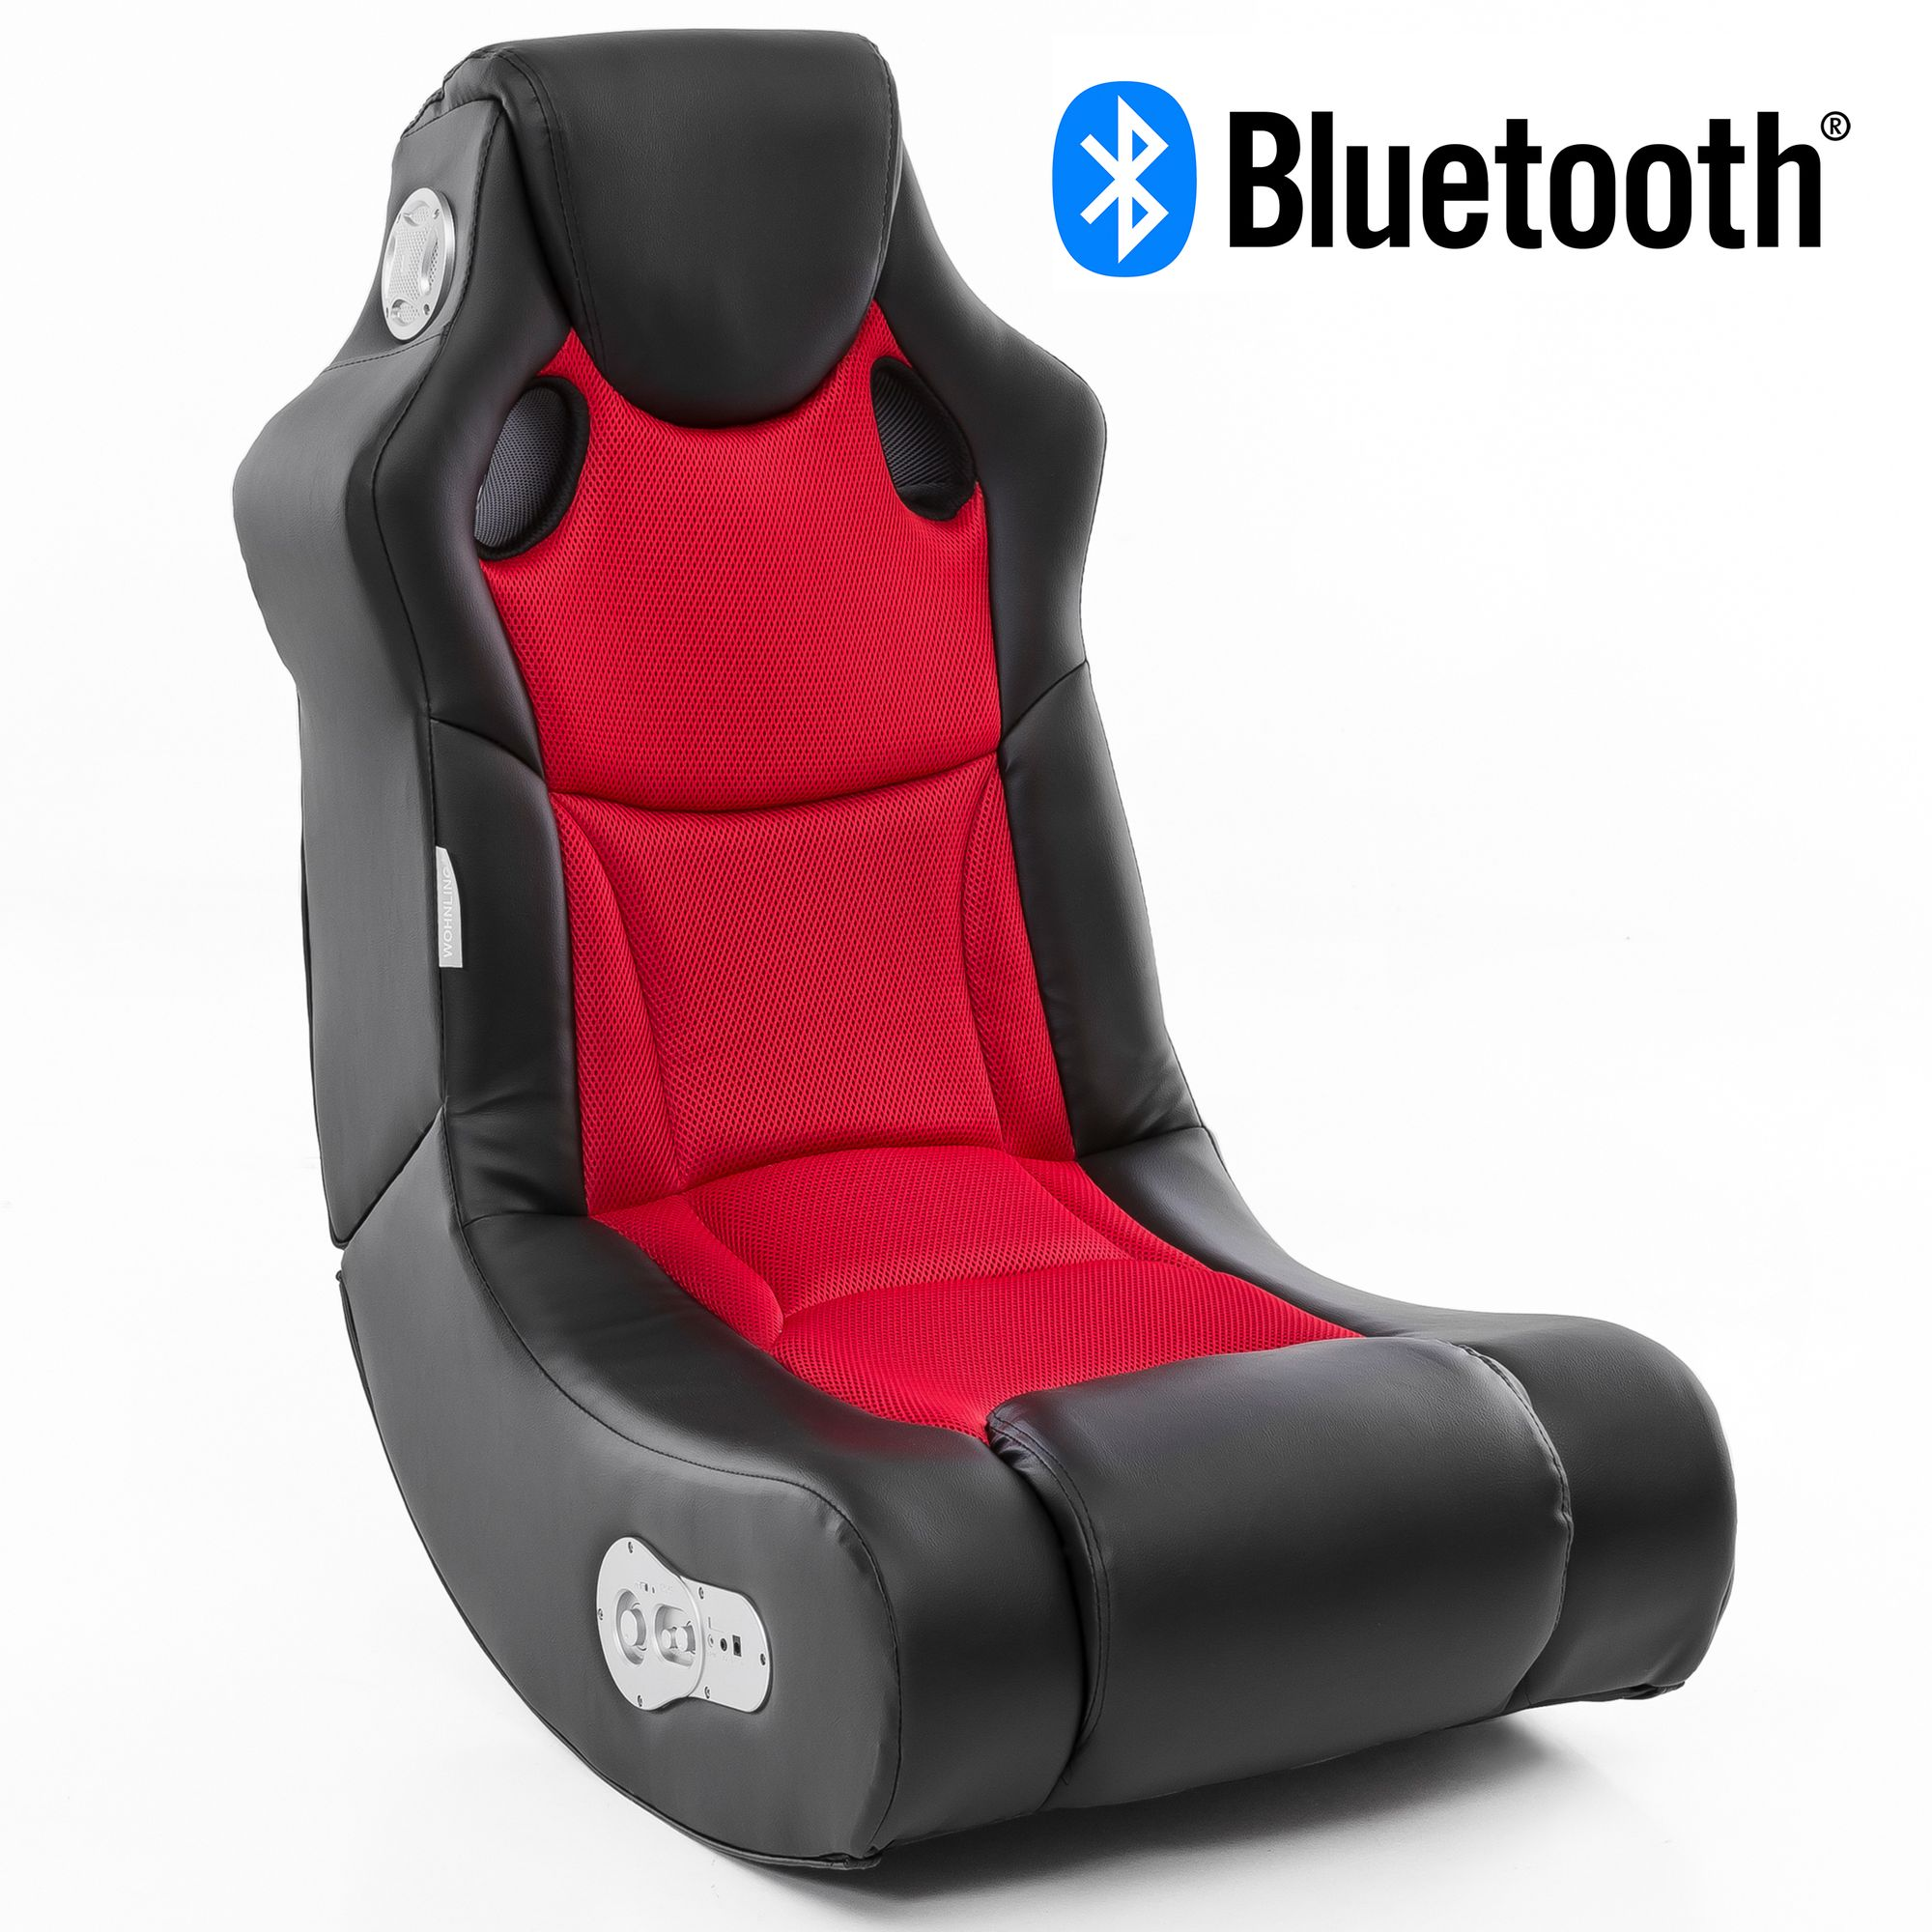 Music Rocker Sessel Wohnling Booster Soundsessel 2 1 Mit Bluetooth Gaming